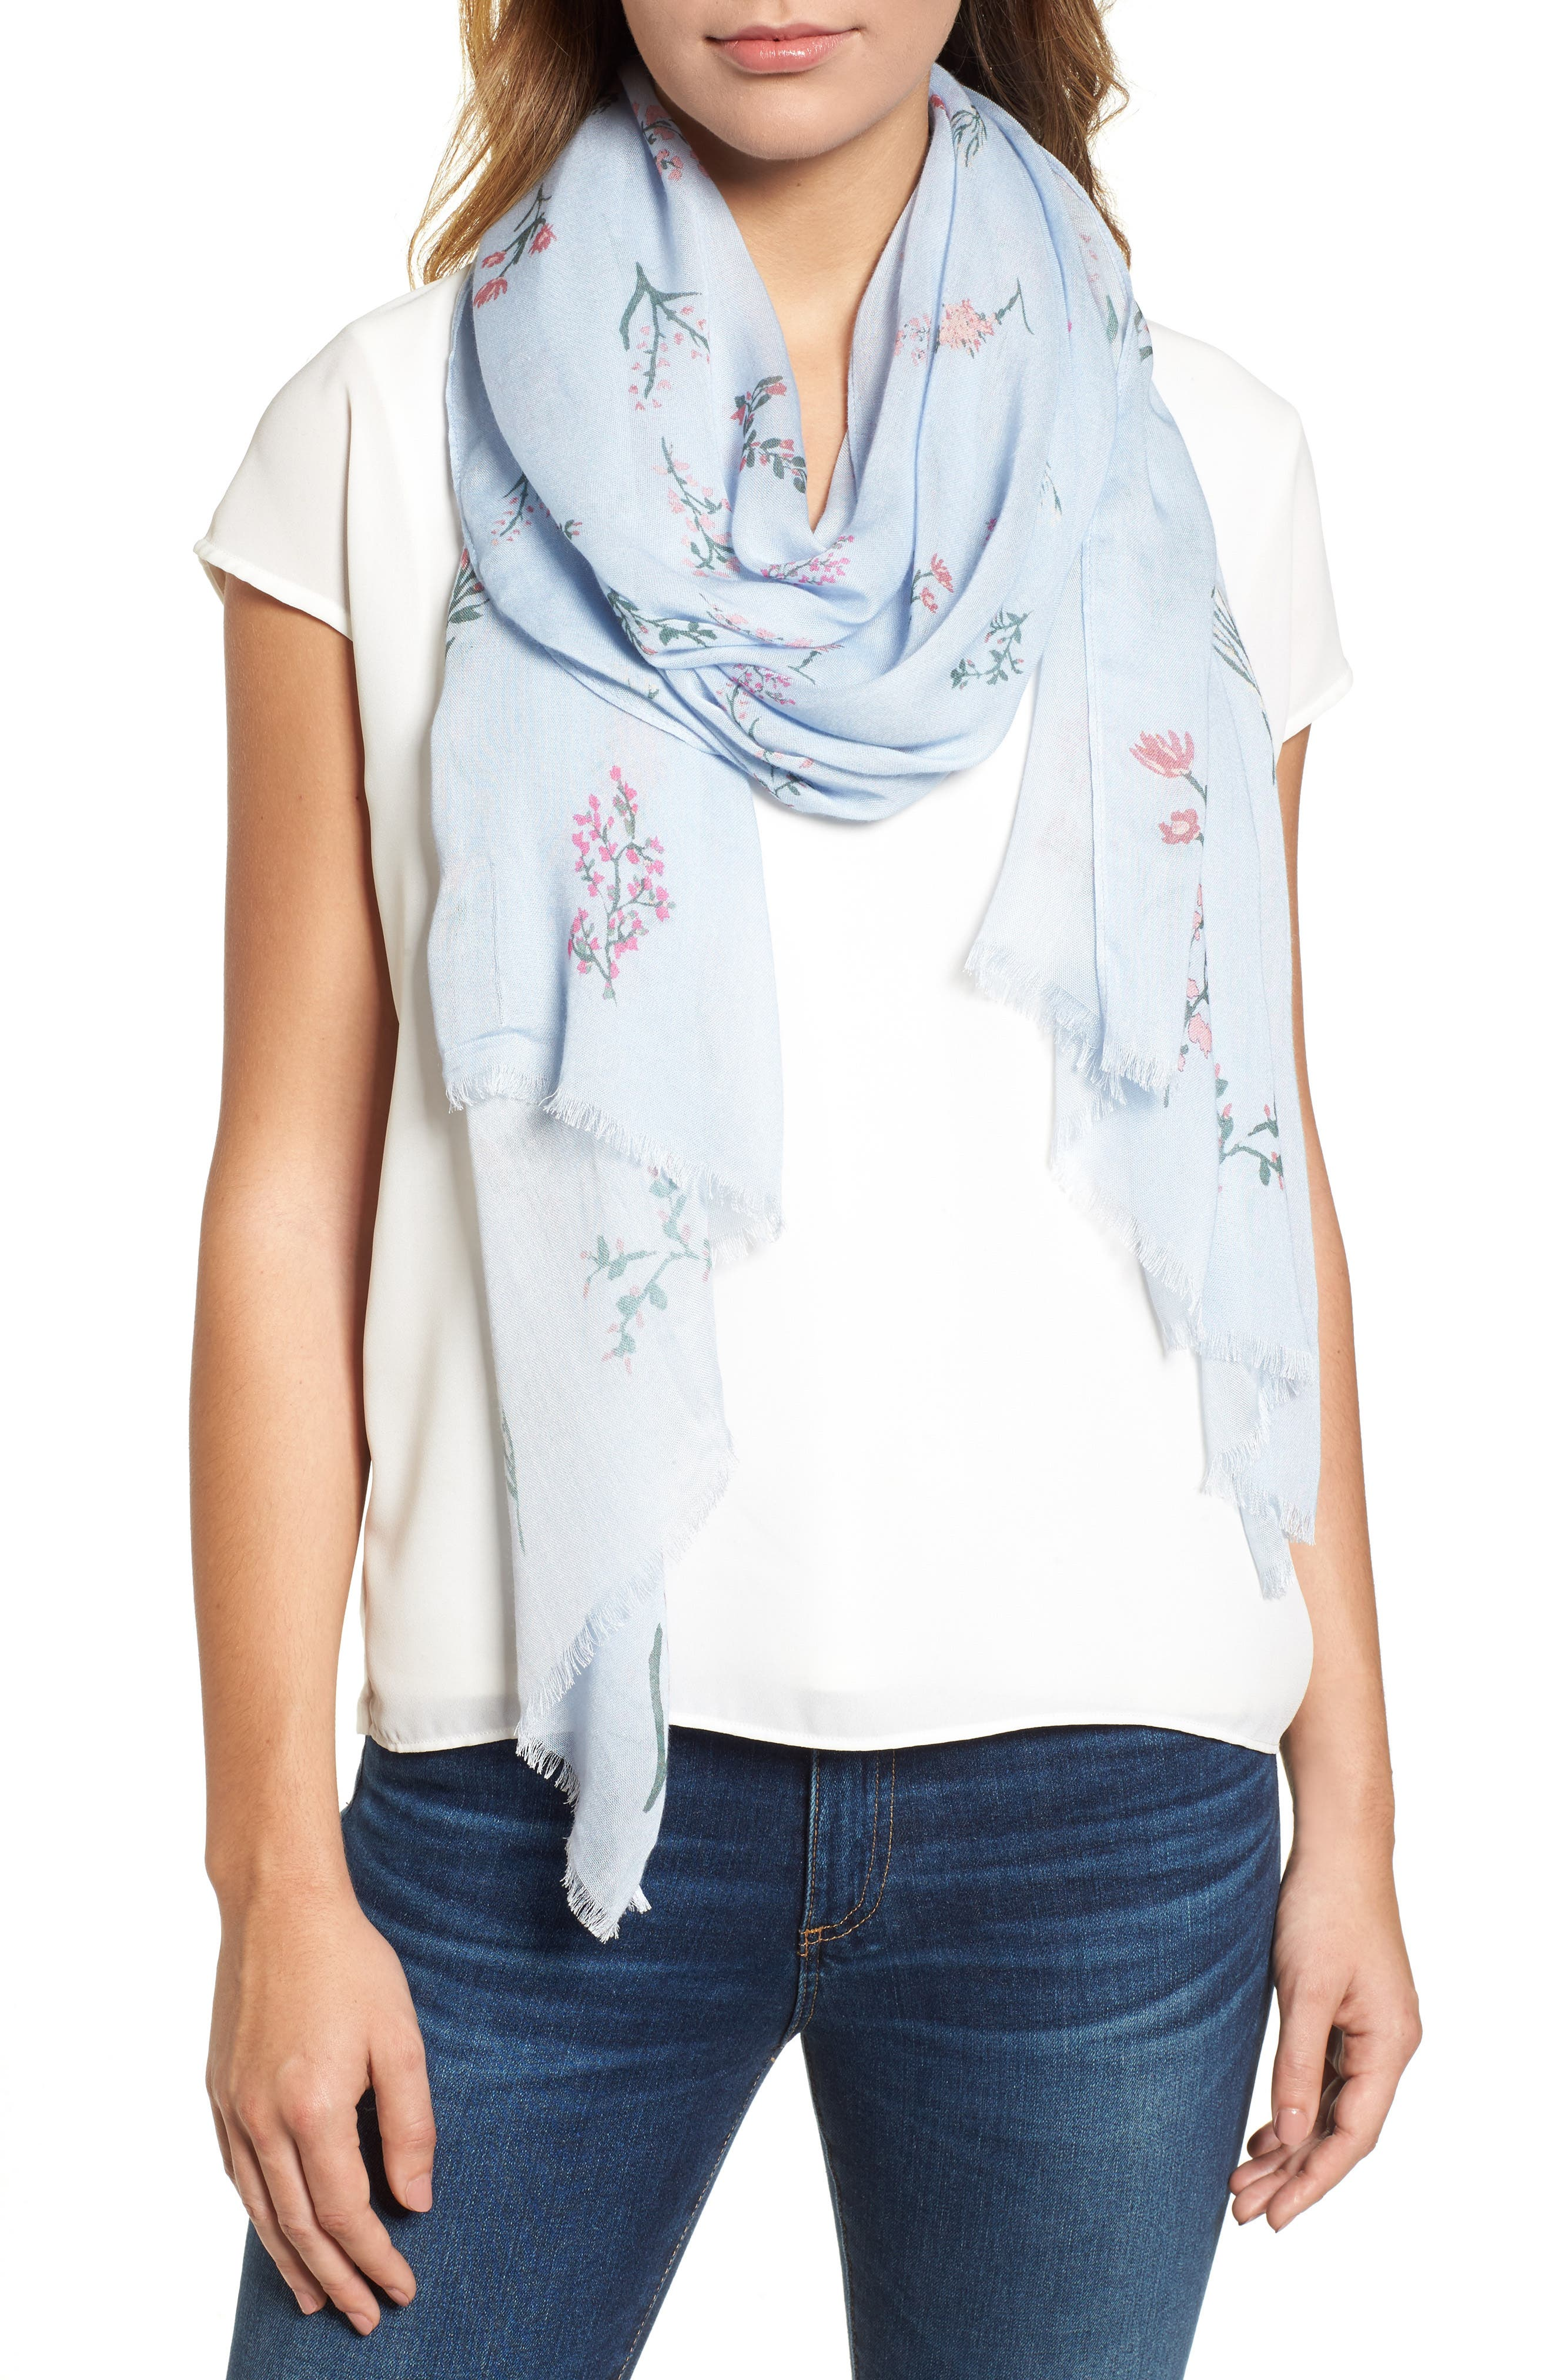 Pressed Flowers Scarf,                         Main,                         color, Skyway